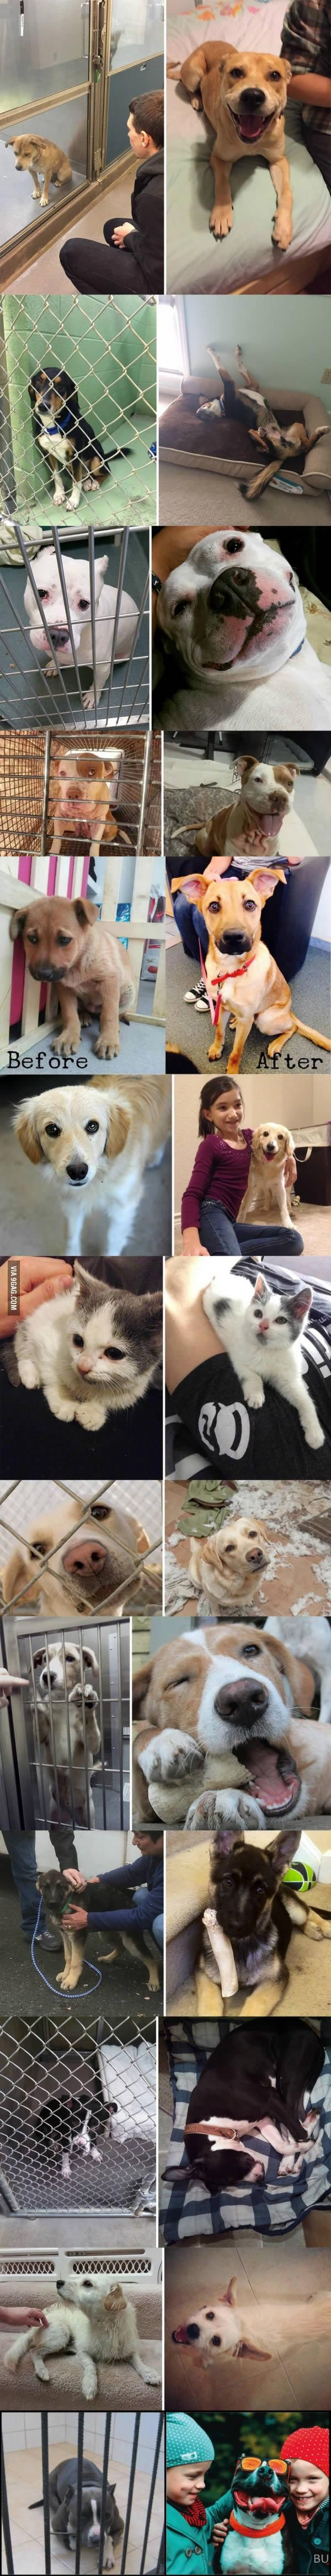 Before and after adoption :)